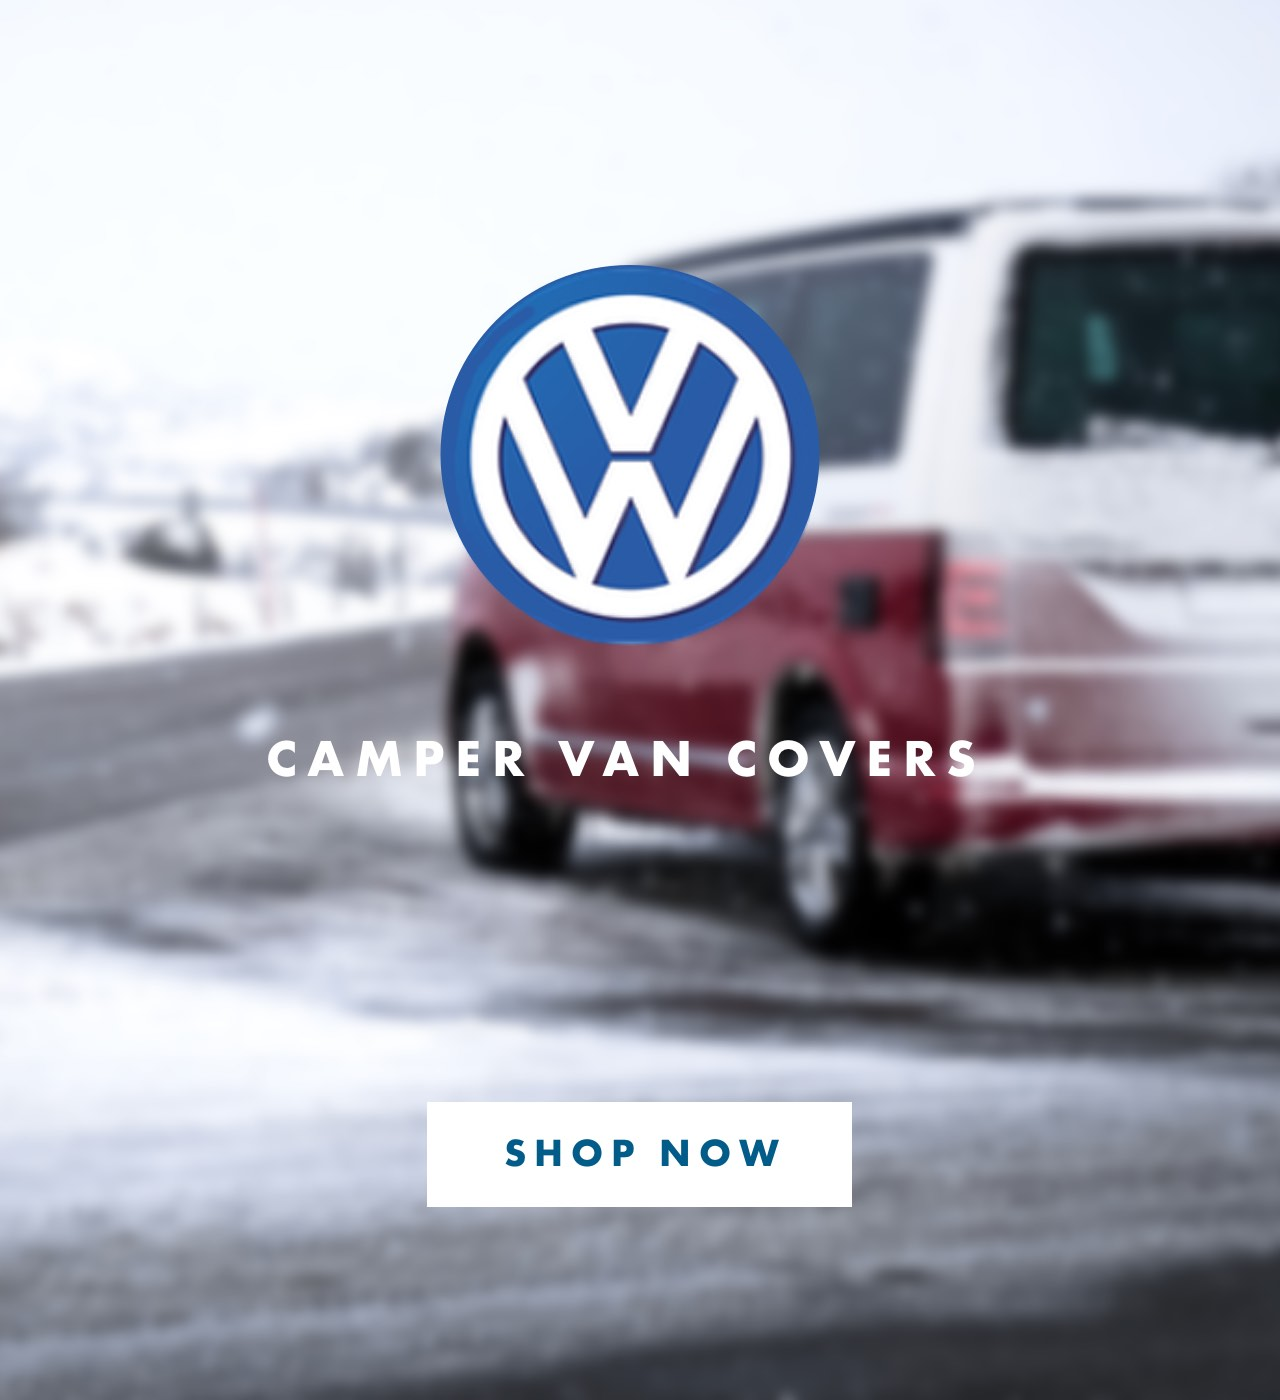 Camper Van Covers Shop Now